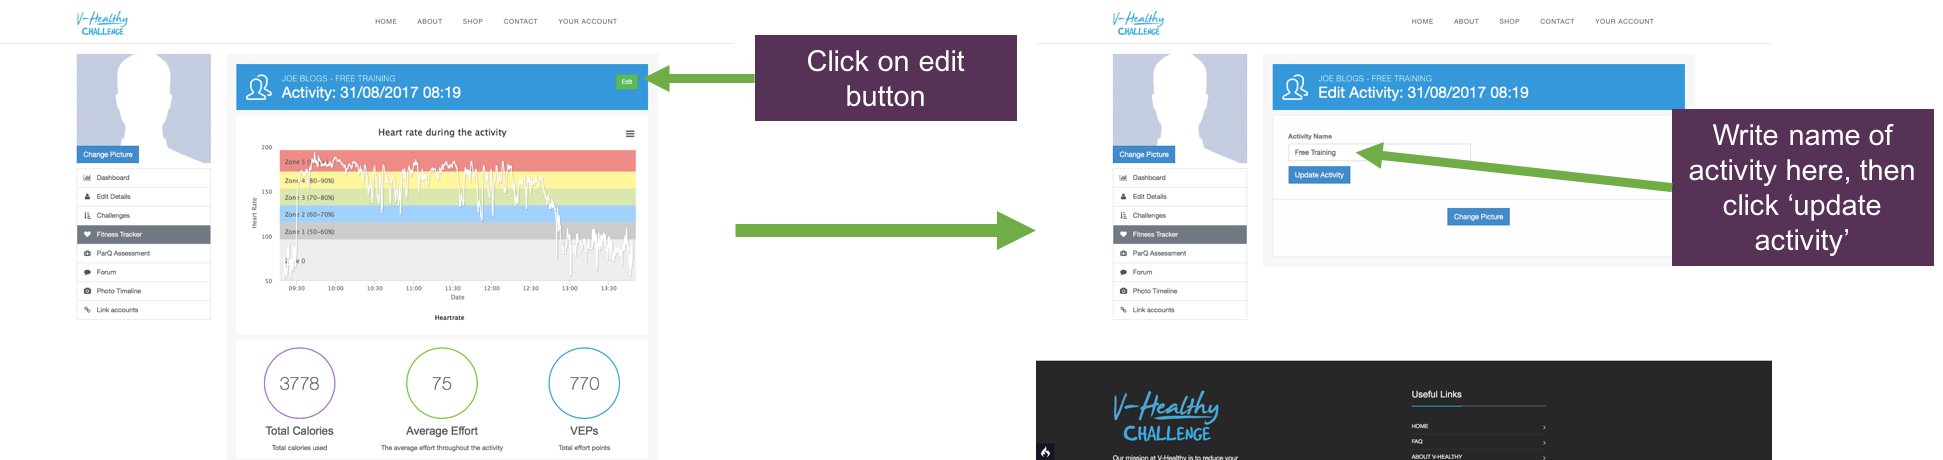 how to edit the name of your page on v-healthy screenshot